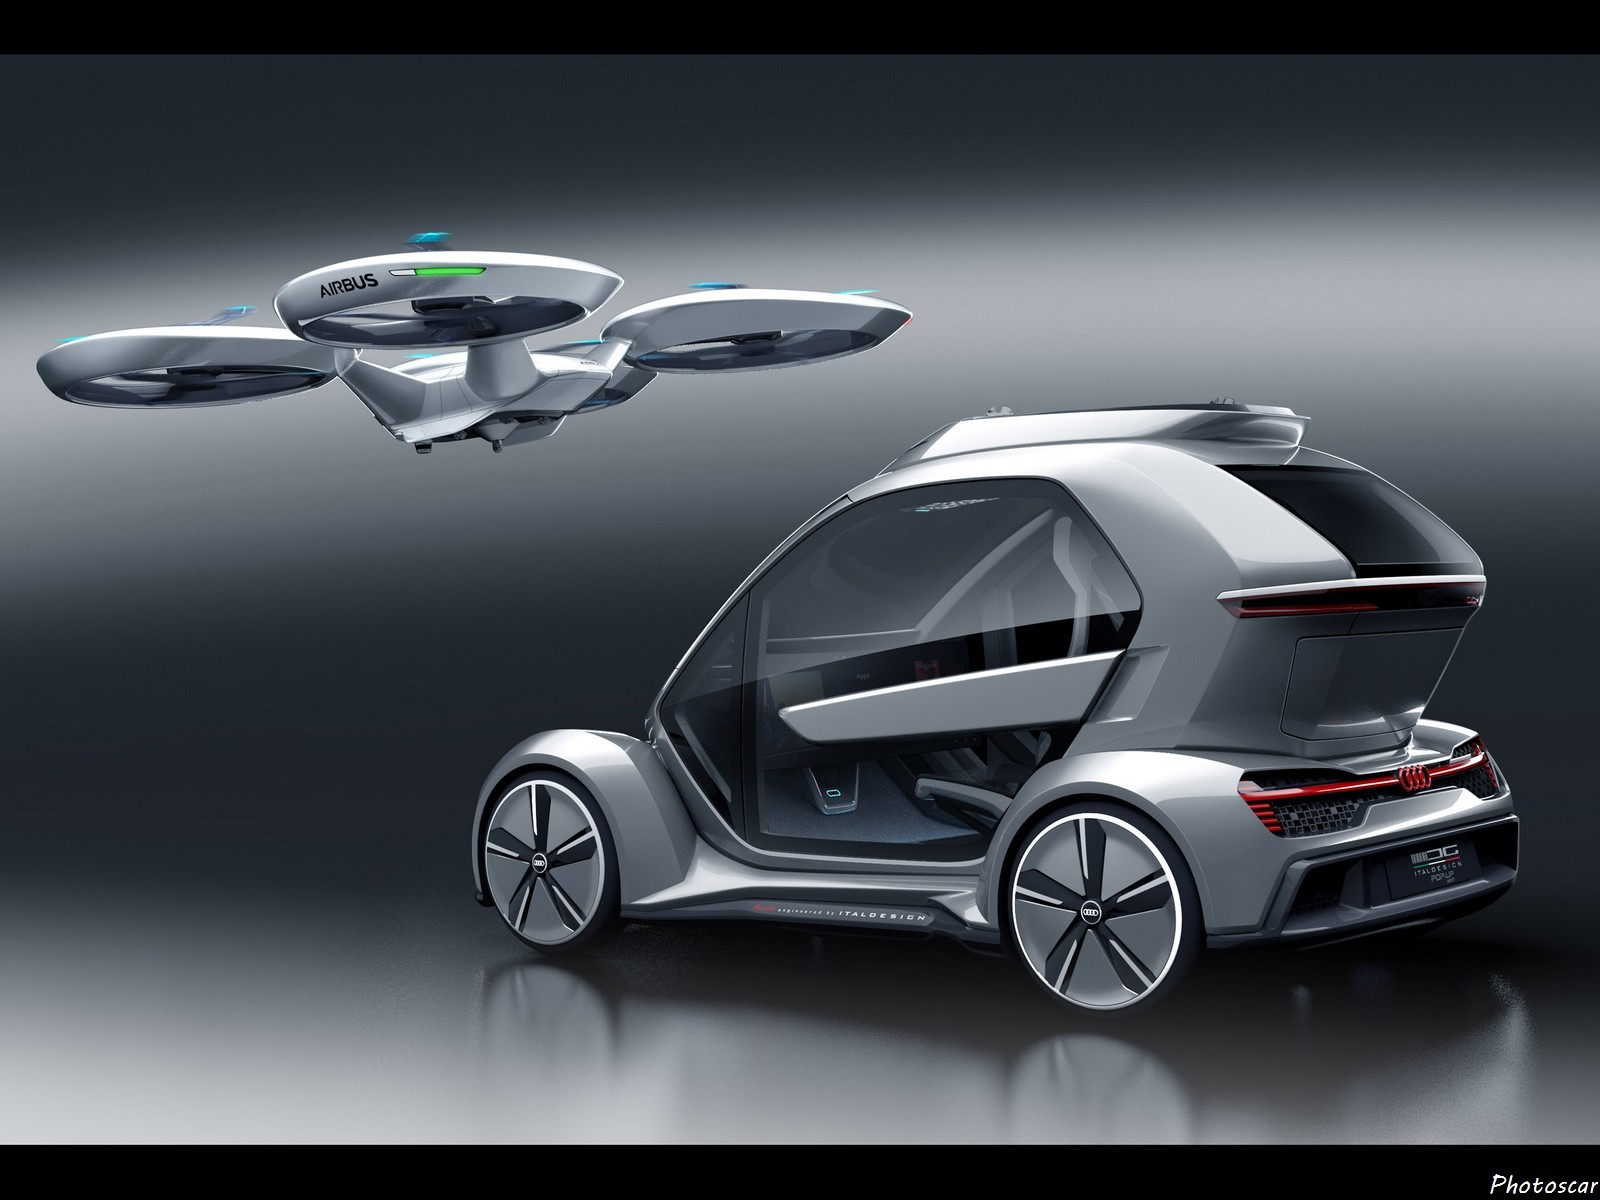 Audi Airbus Pop-Up Next Italdesign 2018